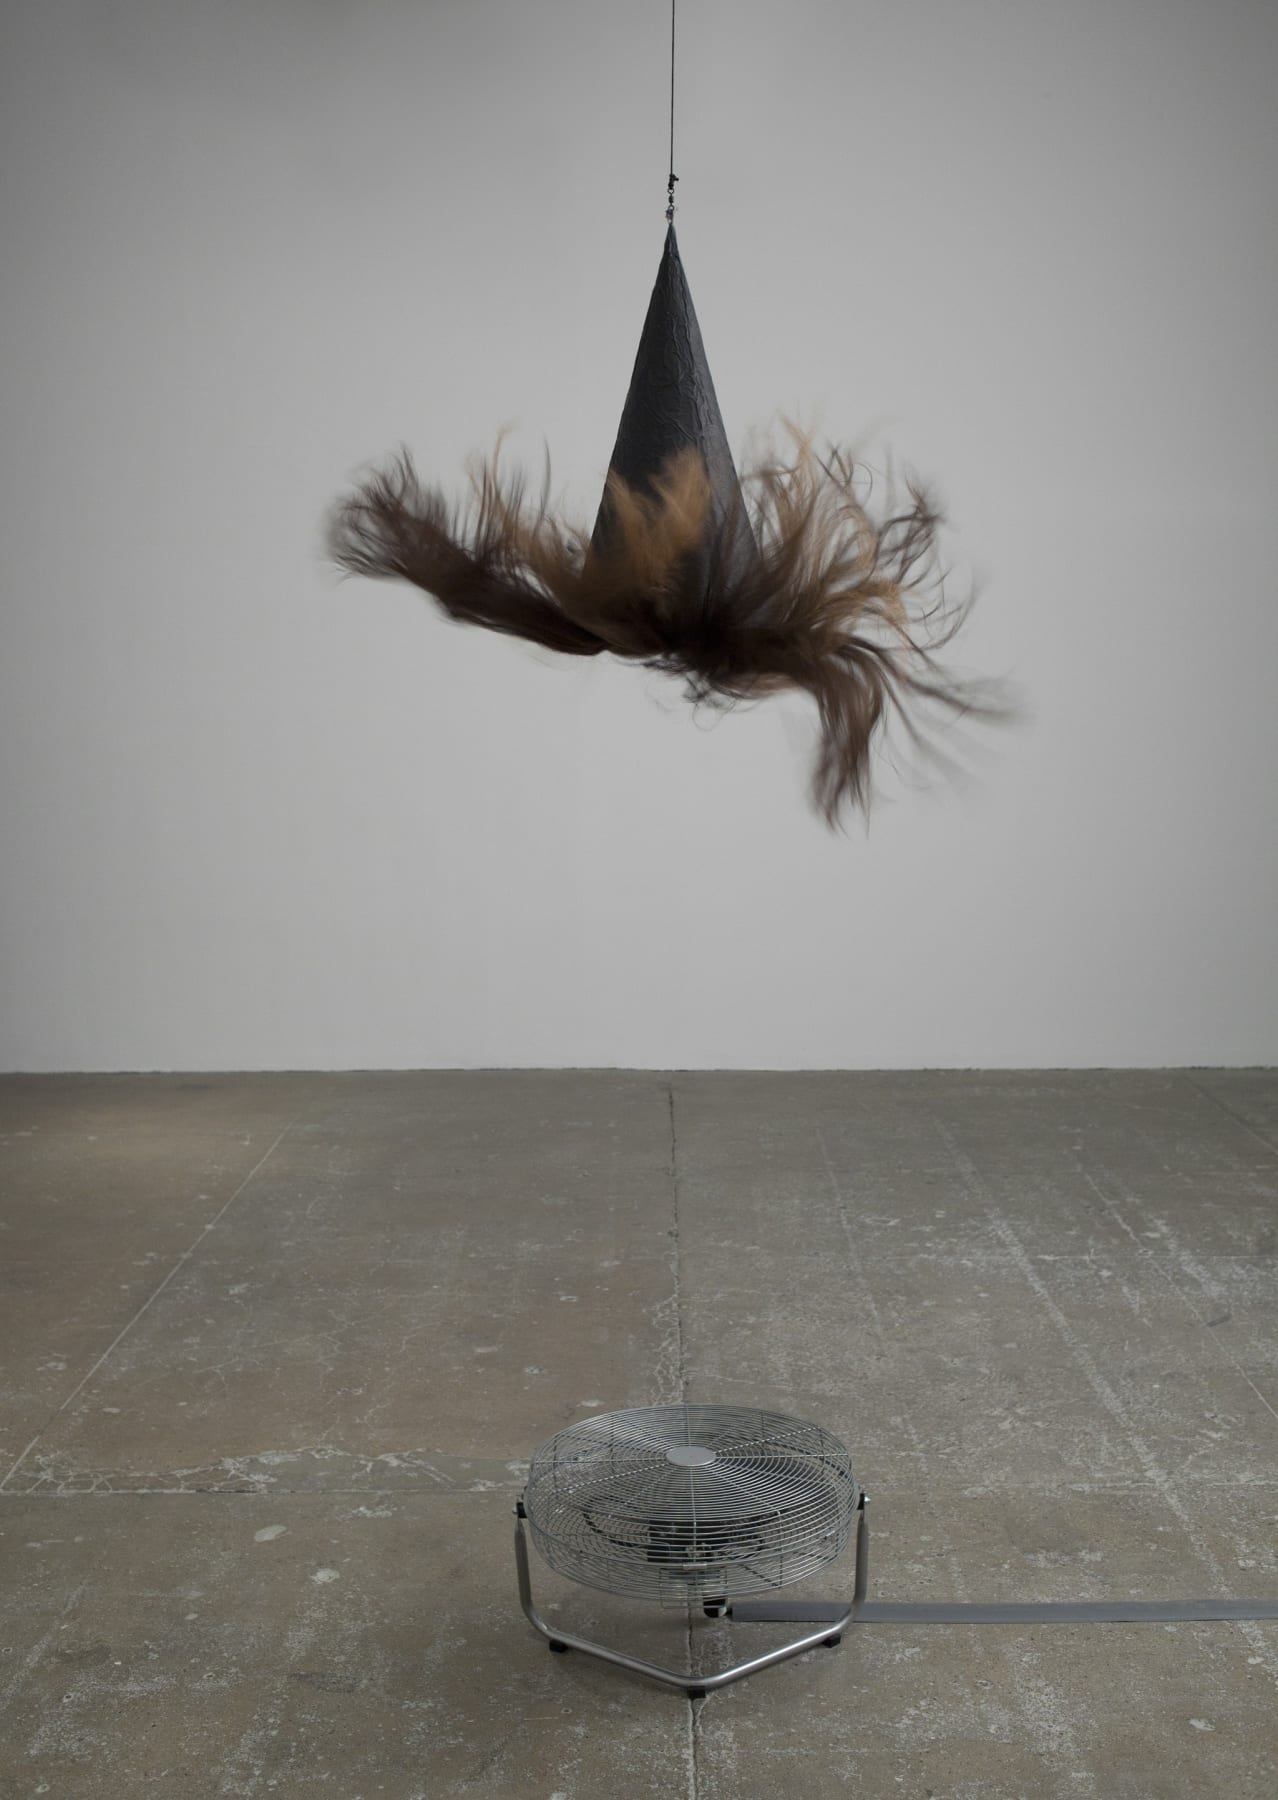 A witch's hat with long brown hair hangs suspended above a fan.